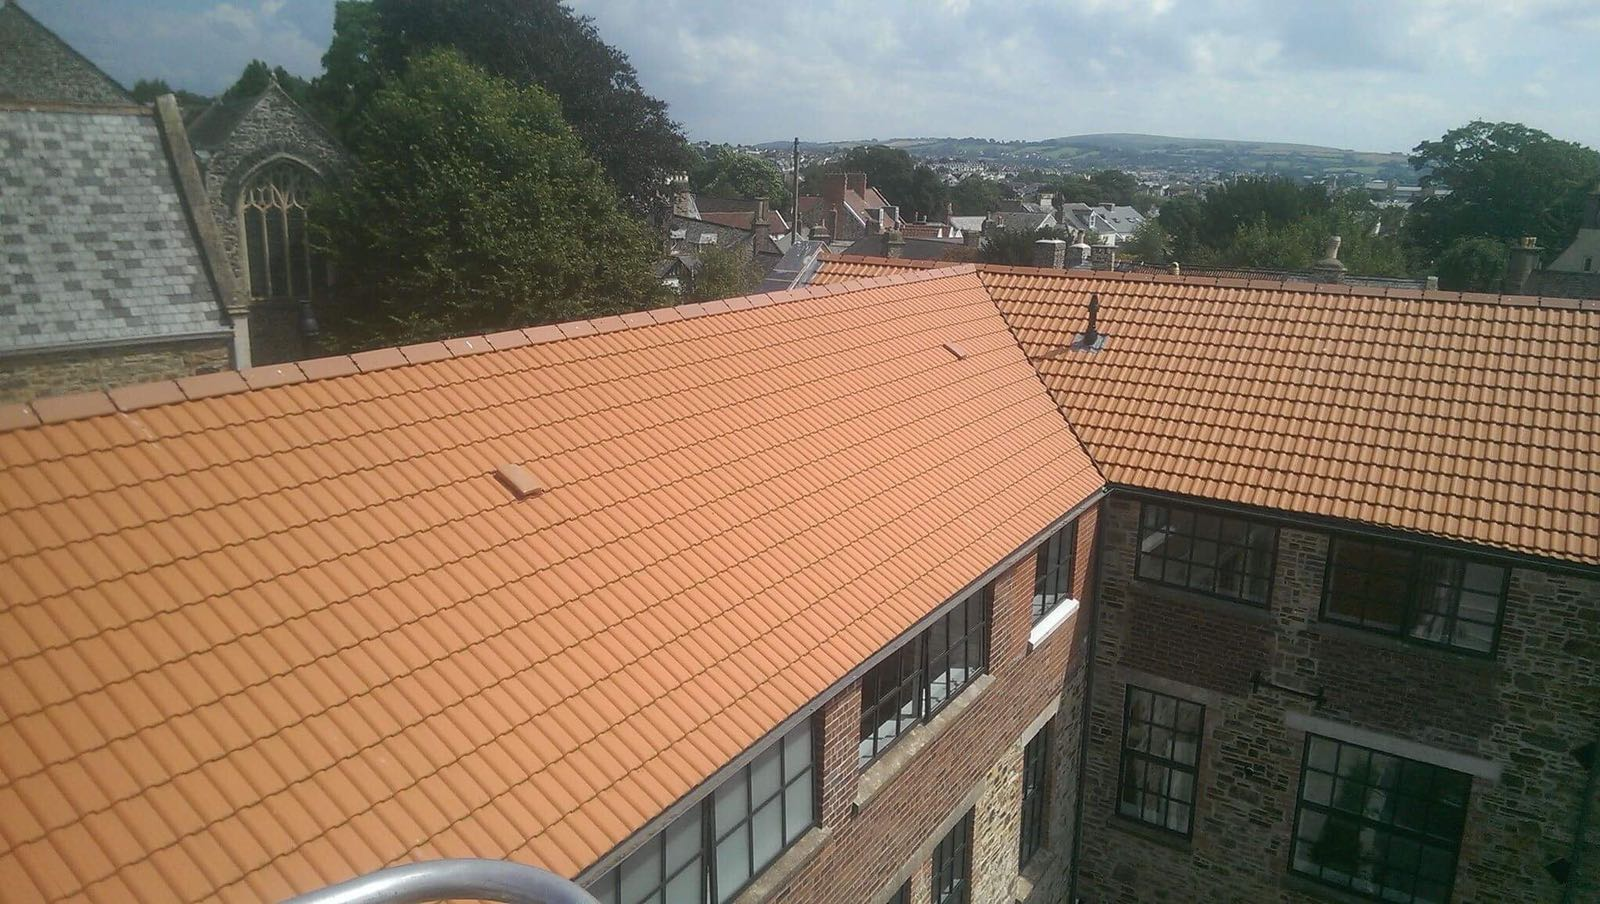 Djt Roofing Domestic Commercial Roofing Services In Barnstaple